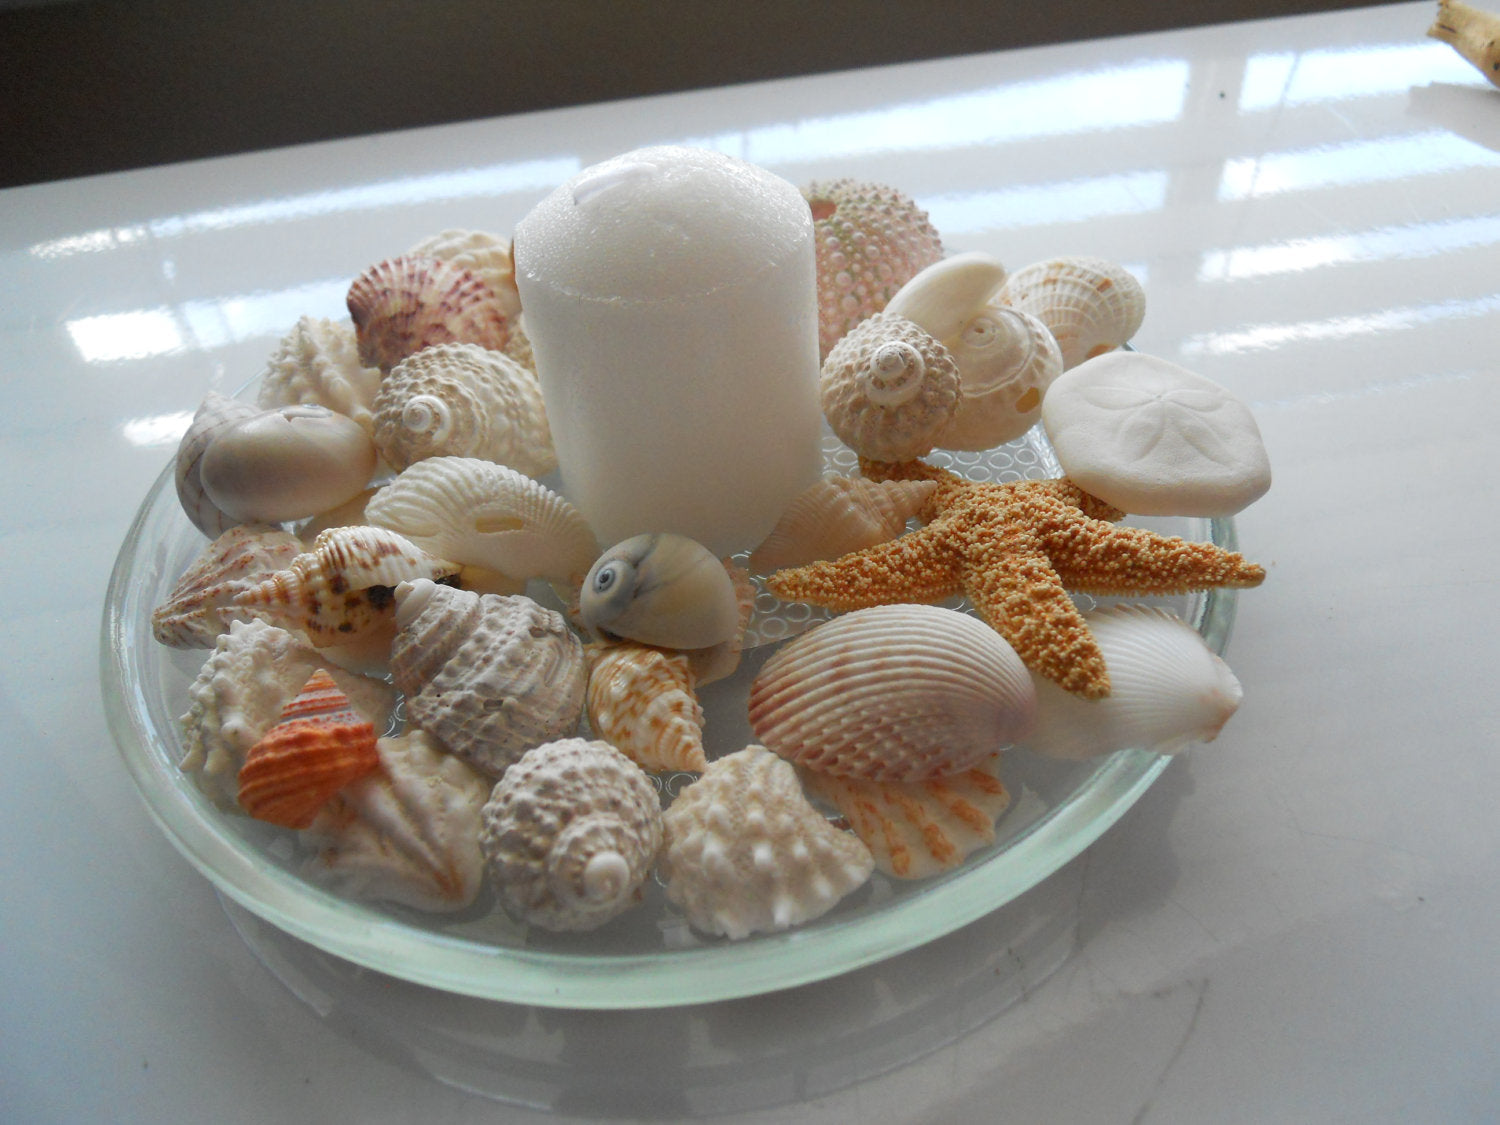 A bowl of shells with a candle in the middle